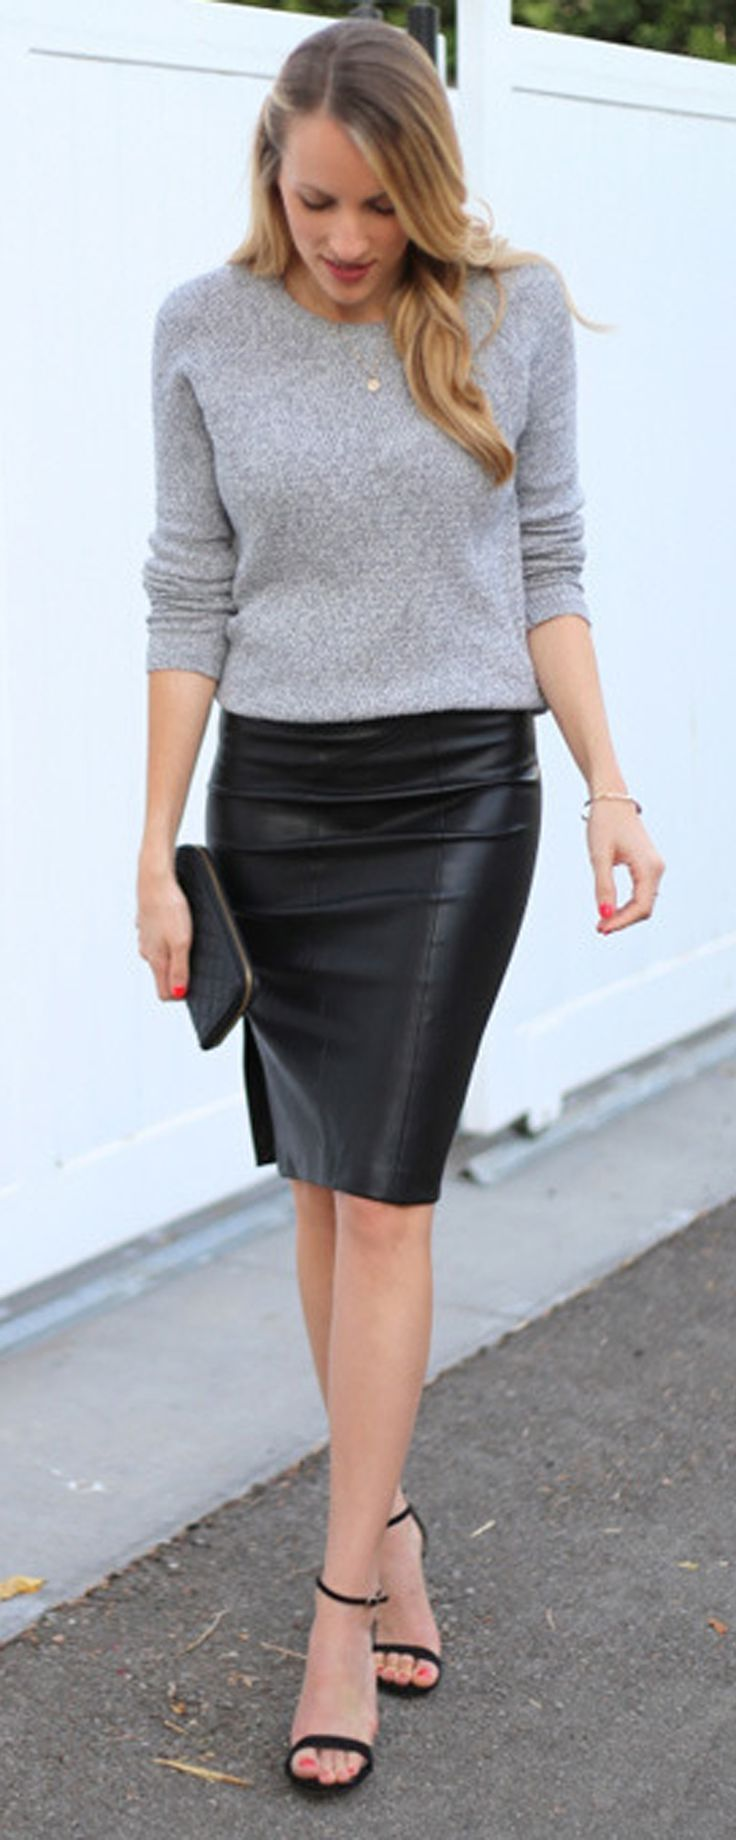 Best 25+ Leather skirts ideas on Pinterest